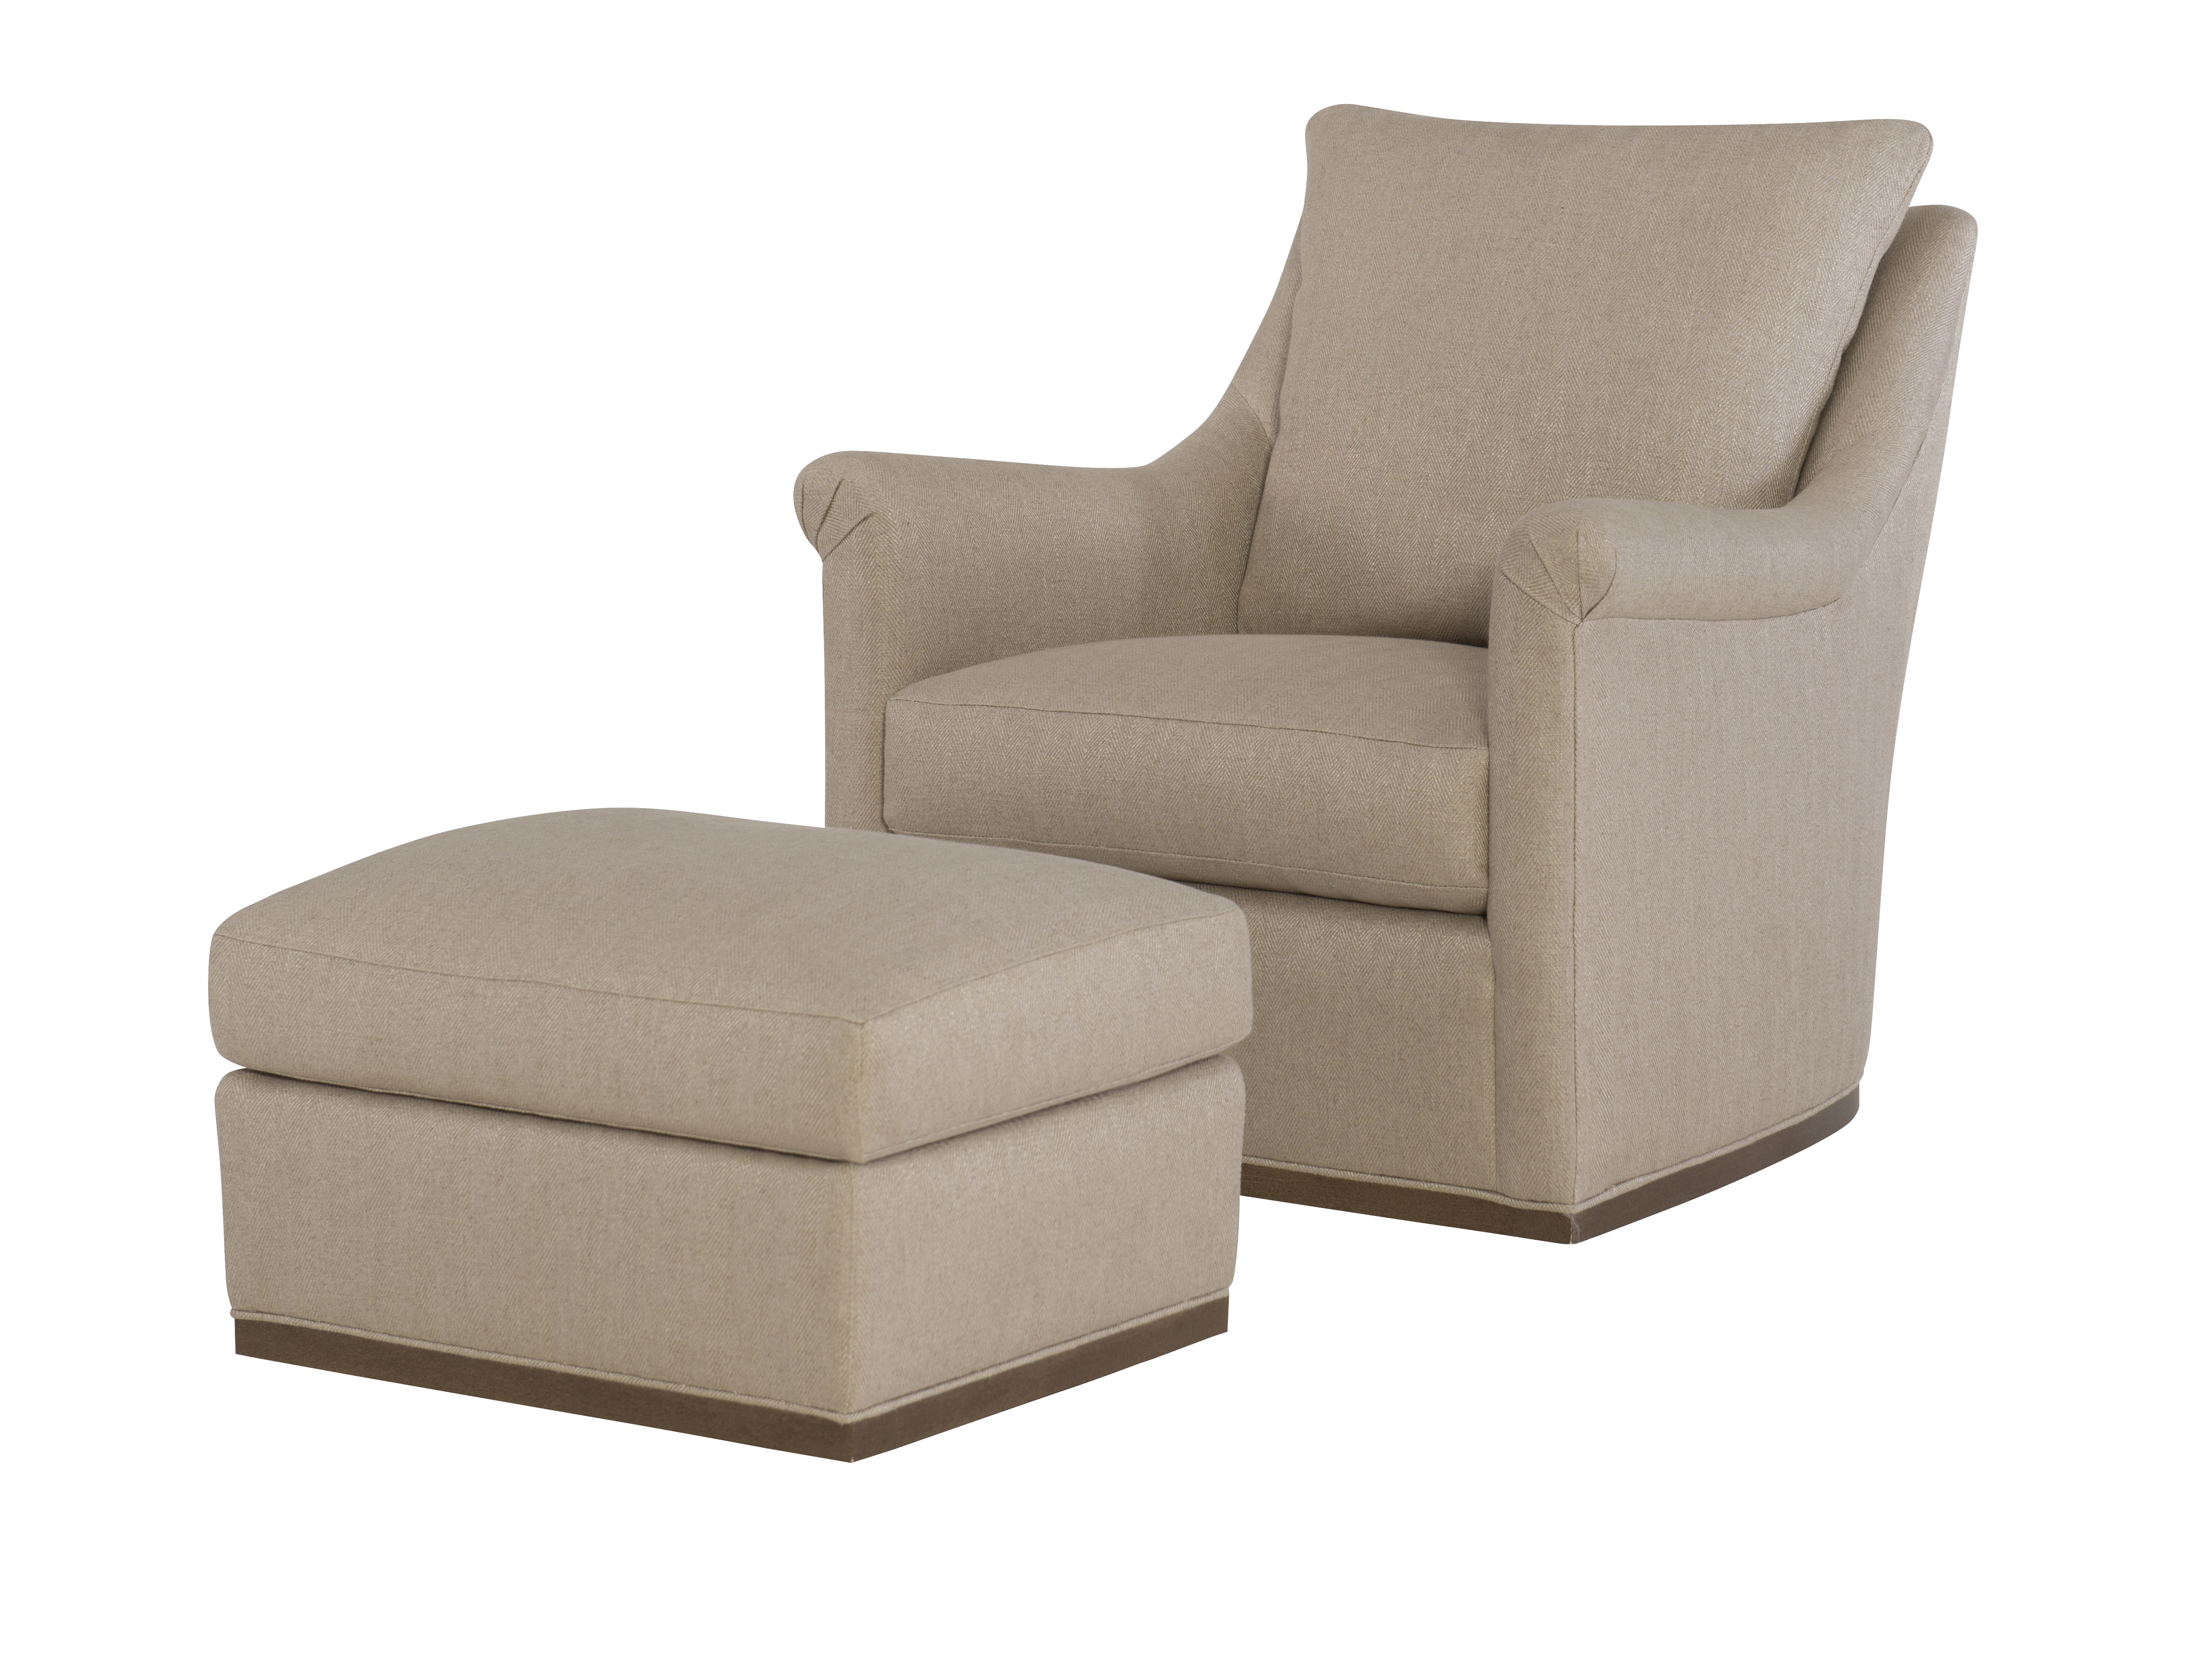 Wesley Hall Furniture Hickory NC PRODUCT PAGE 2011 SWIVEL CHAIR